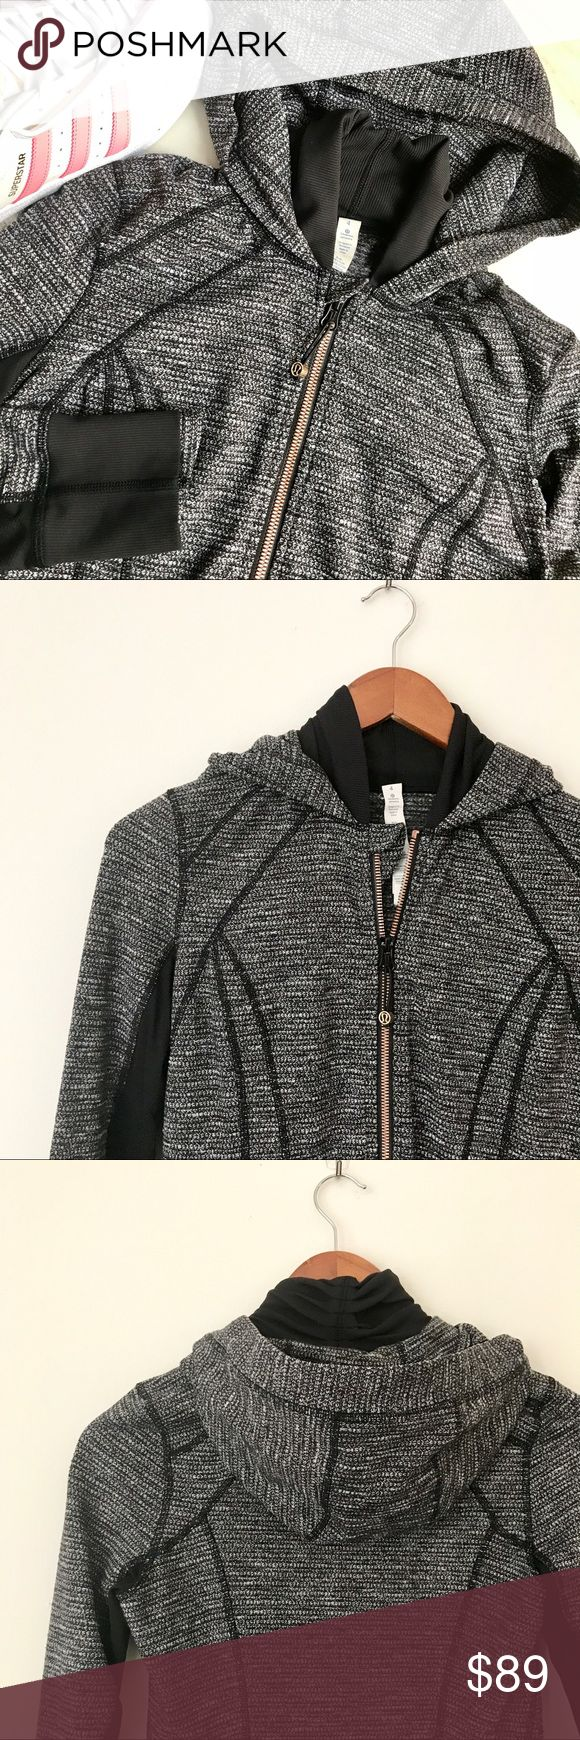 Lululemon daily practice jacket coco pique * Amazing body fit | long-ass lululemon hoodie  * Luon fabric / preloved in excellent condition (no flaws) lululemon athletica Jackets & Coats